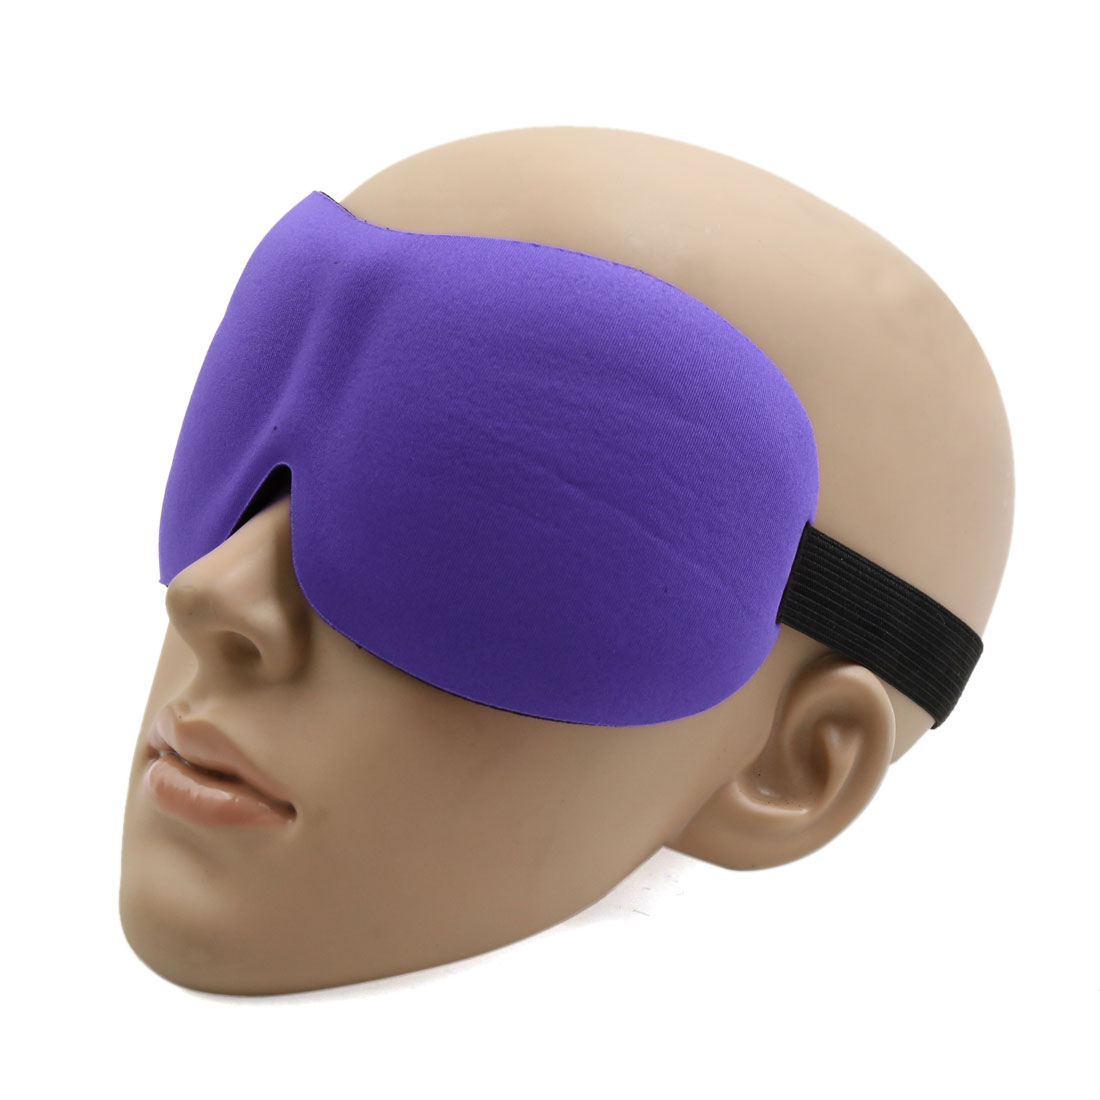 Travel 3D Eye Sleep Mask Padded Shade Cover Rest Relax Sleeping Blindfold Shield Purple